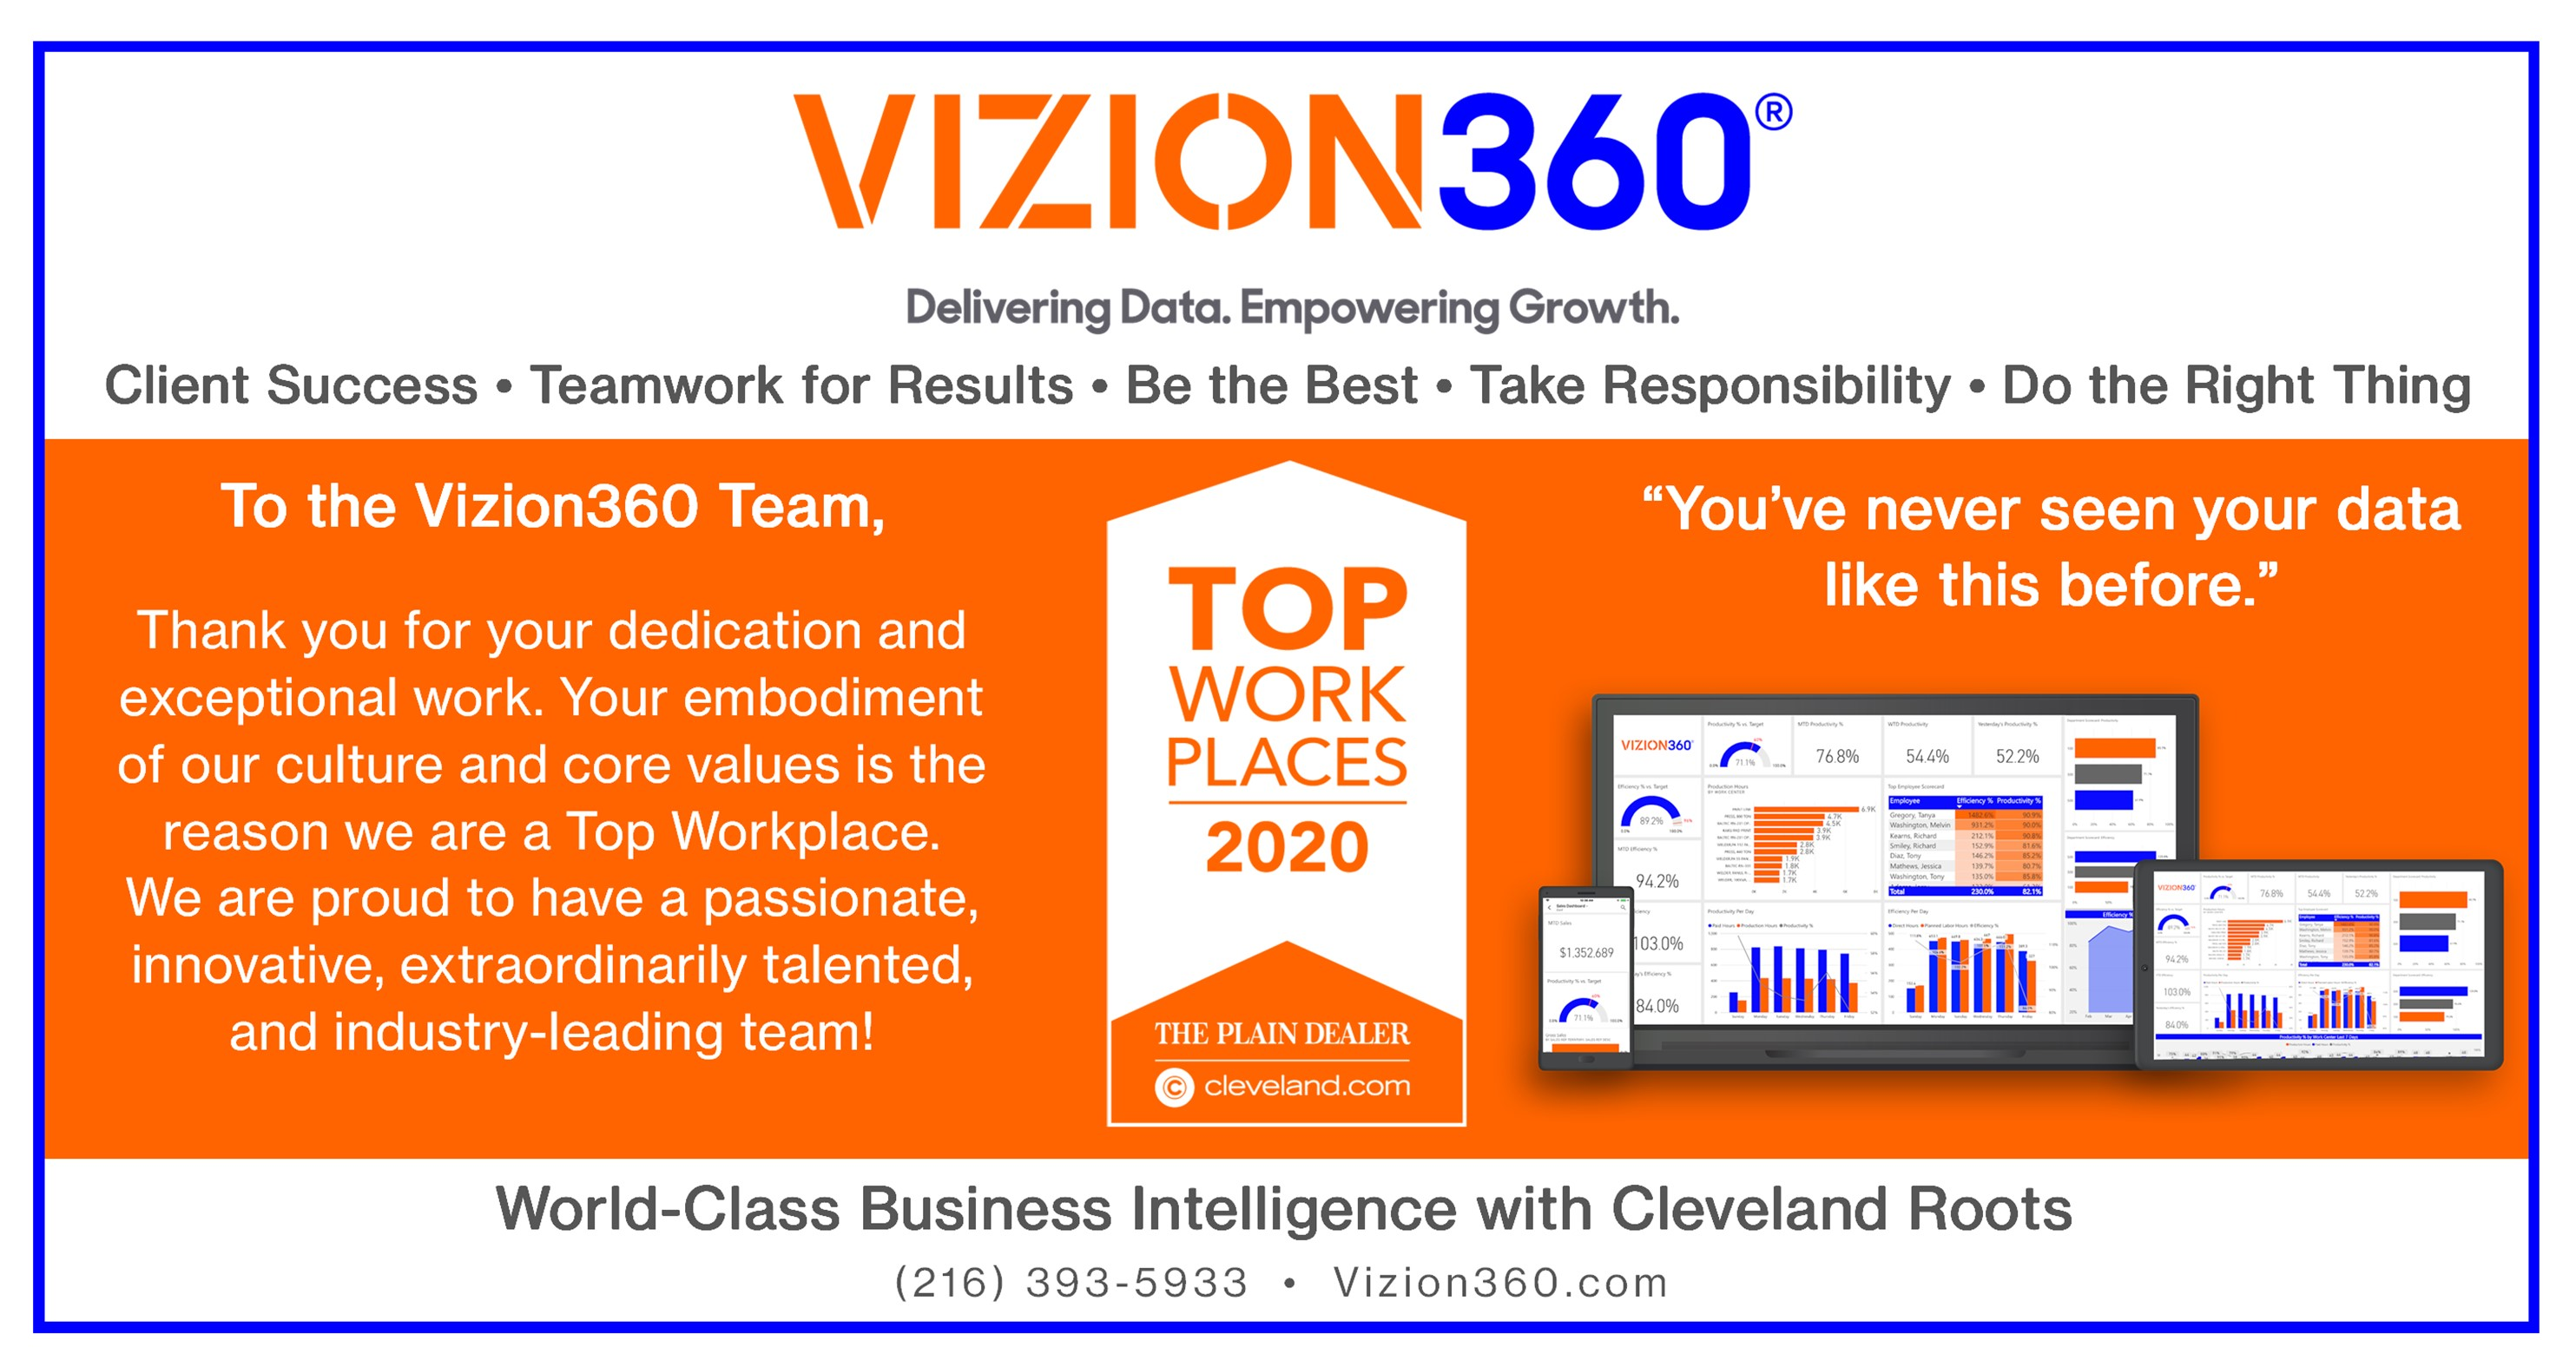 Vizion360 Top Workplace Award and Team Thank You